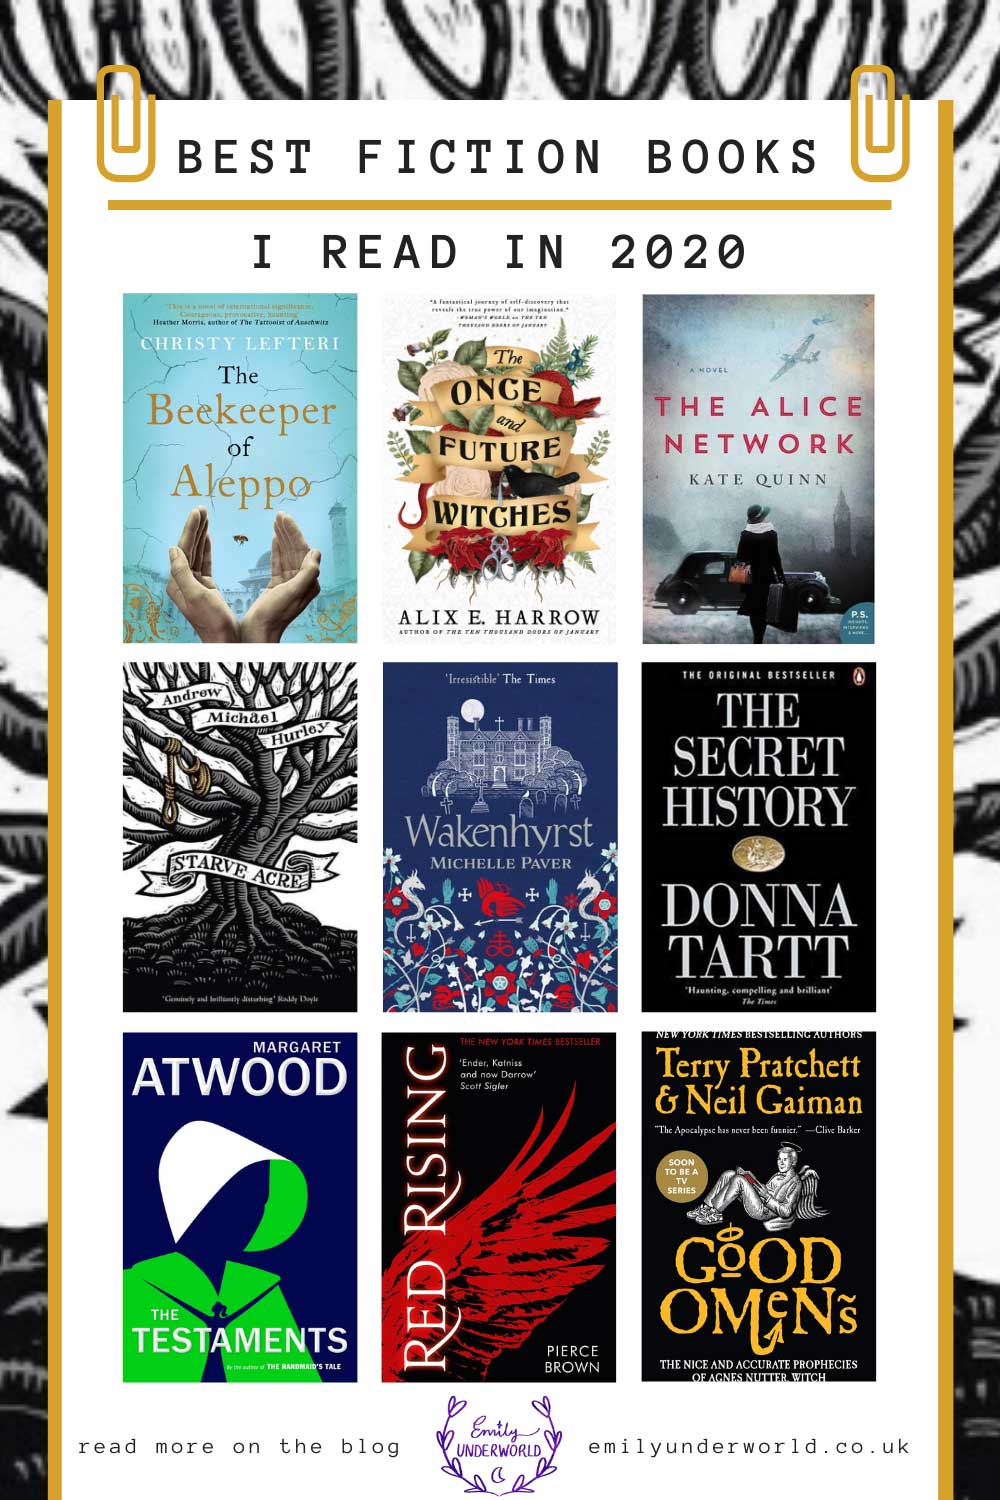 Top 10 Fiction Books I Read in 2020